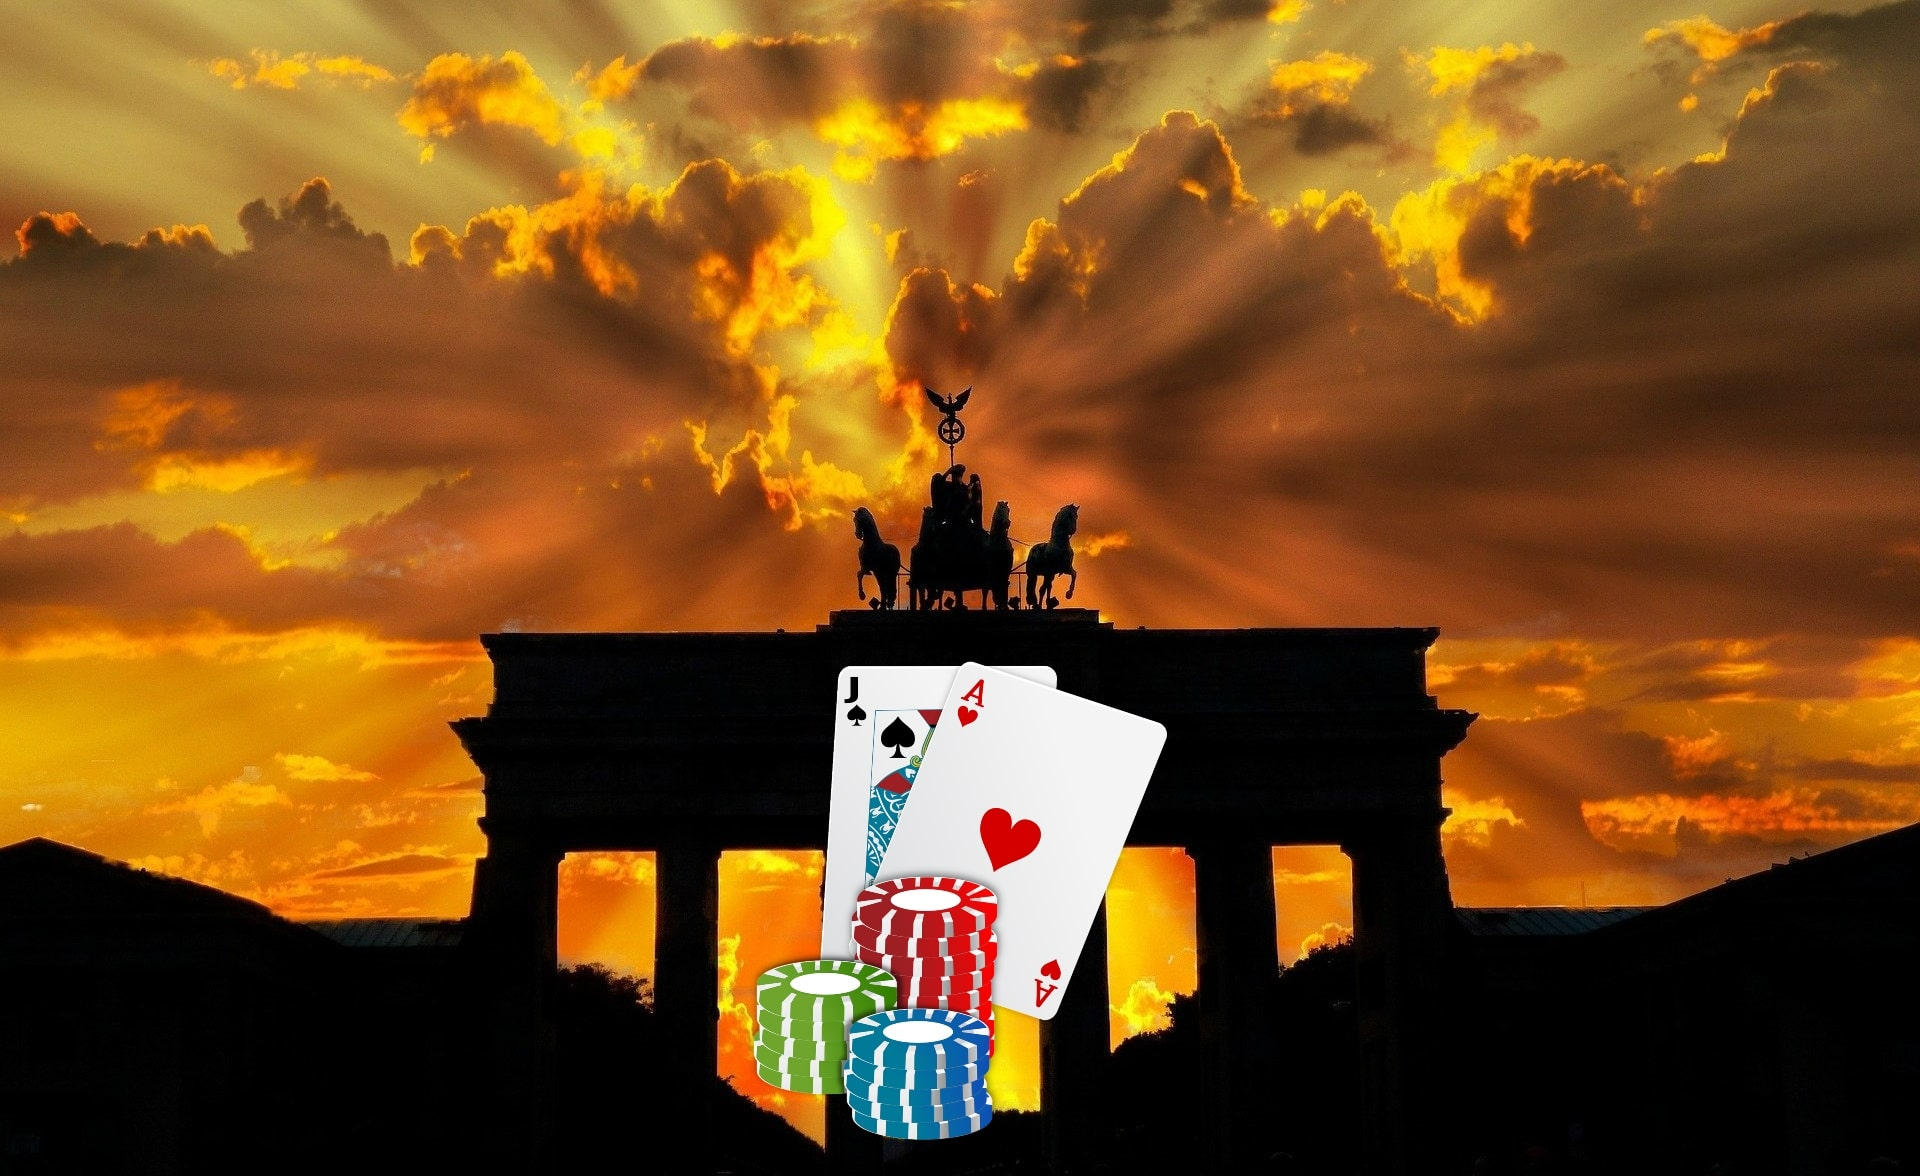 New Gambling Regulation Model in Germany Promising Results